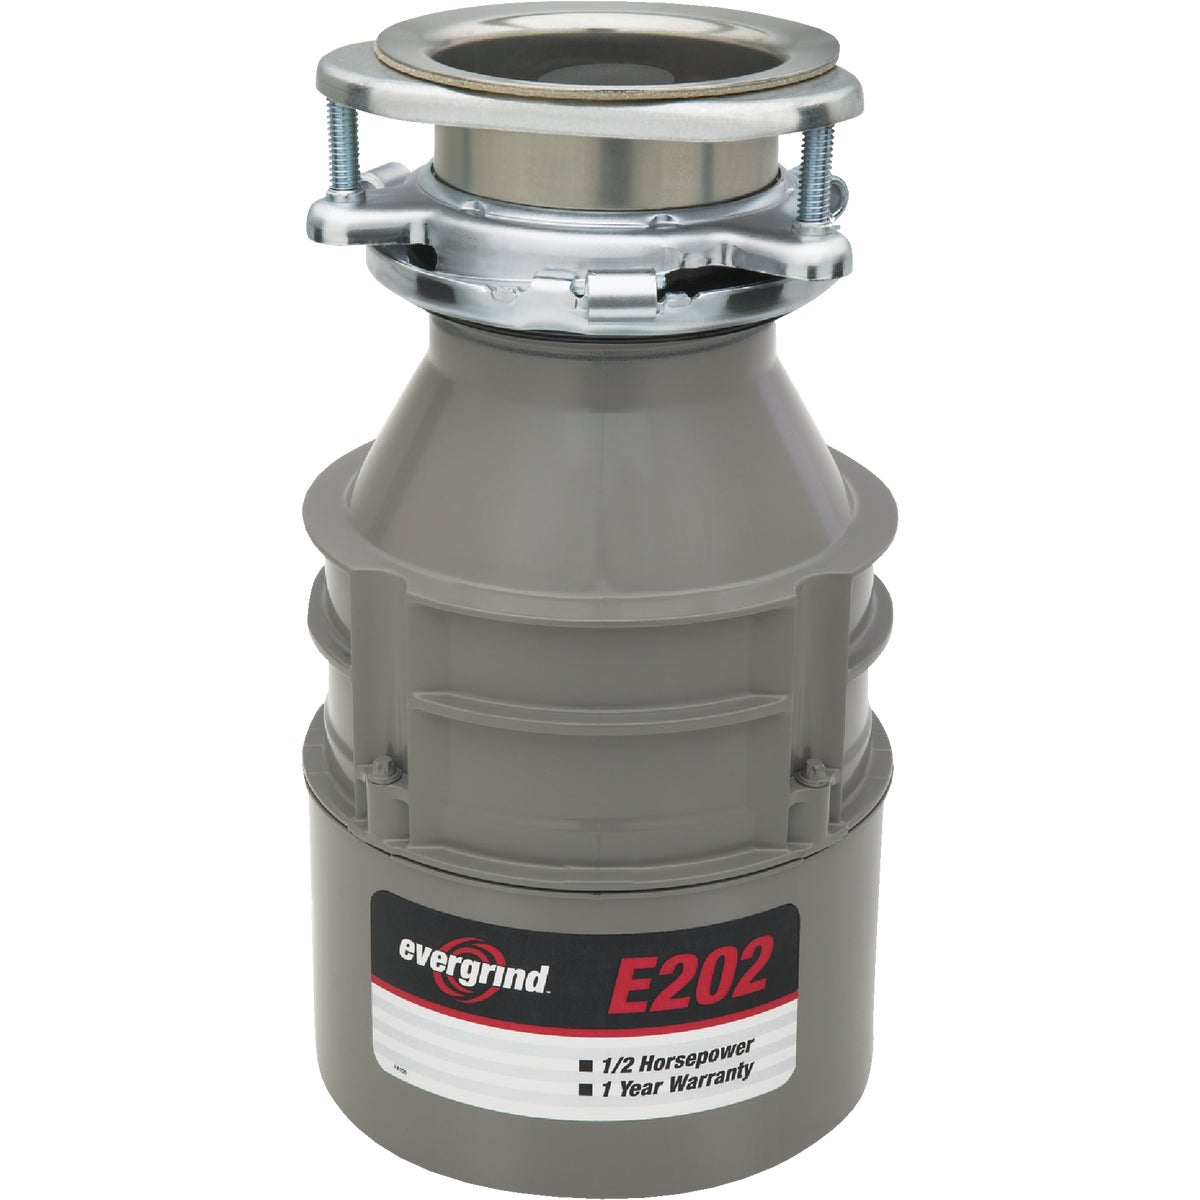 1/2HP DISPOSER - E202 by Insinkerator Evergrd